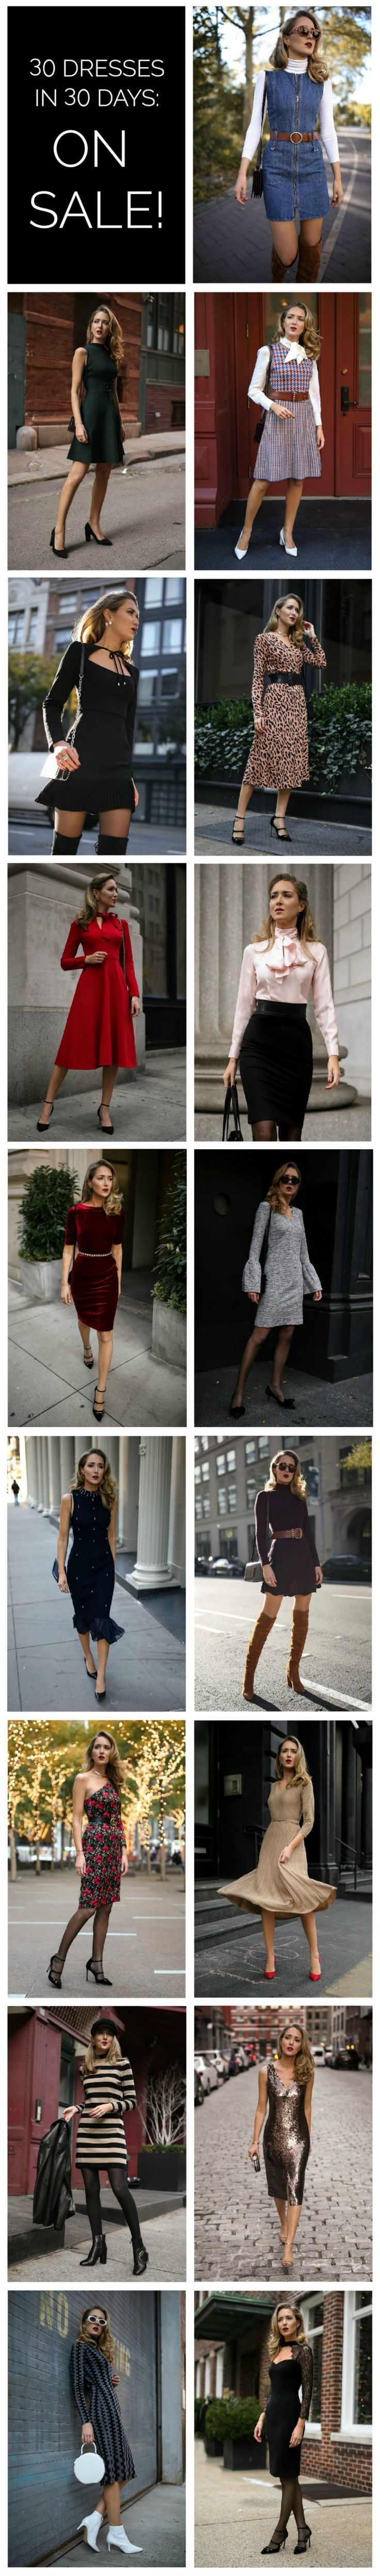 30 DRESSES IN 30 DAYS ON SALE NOW! {Black Friday Sales 2017, Black Friday 2017, DVF, Alice and Olivia, J Crew, Club Monaco, Nic and Zoe, See by Chloe, Jonathan Simkhai, Boden, Ted Baker, Black Halo, Tory Burch, Rebecca Vallance, Maje, holiday style, holiday style 2017, holiday dresses, festive style 2017, festive style, classic dressing, classy style, best of Black Friday 2017}